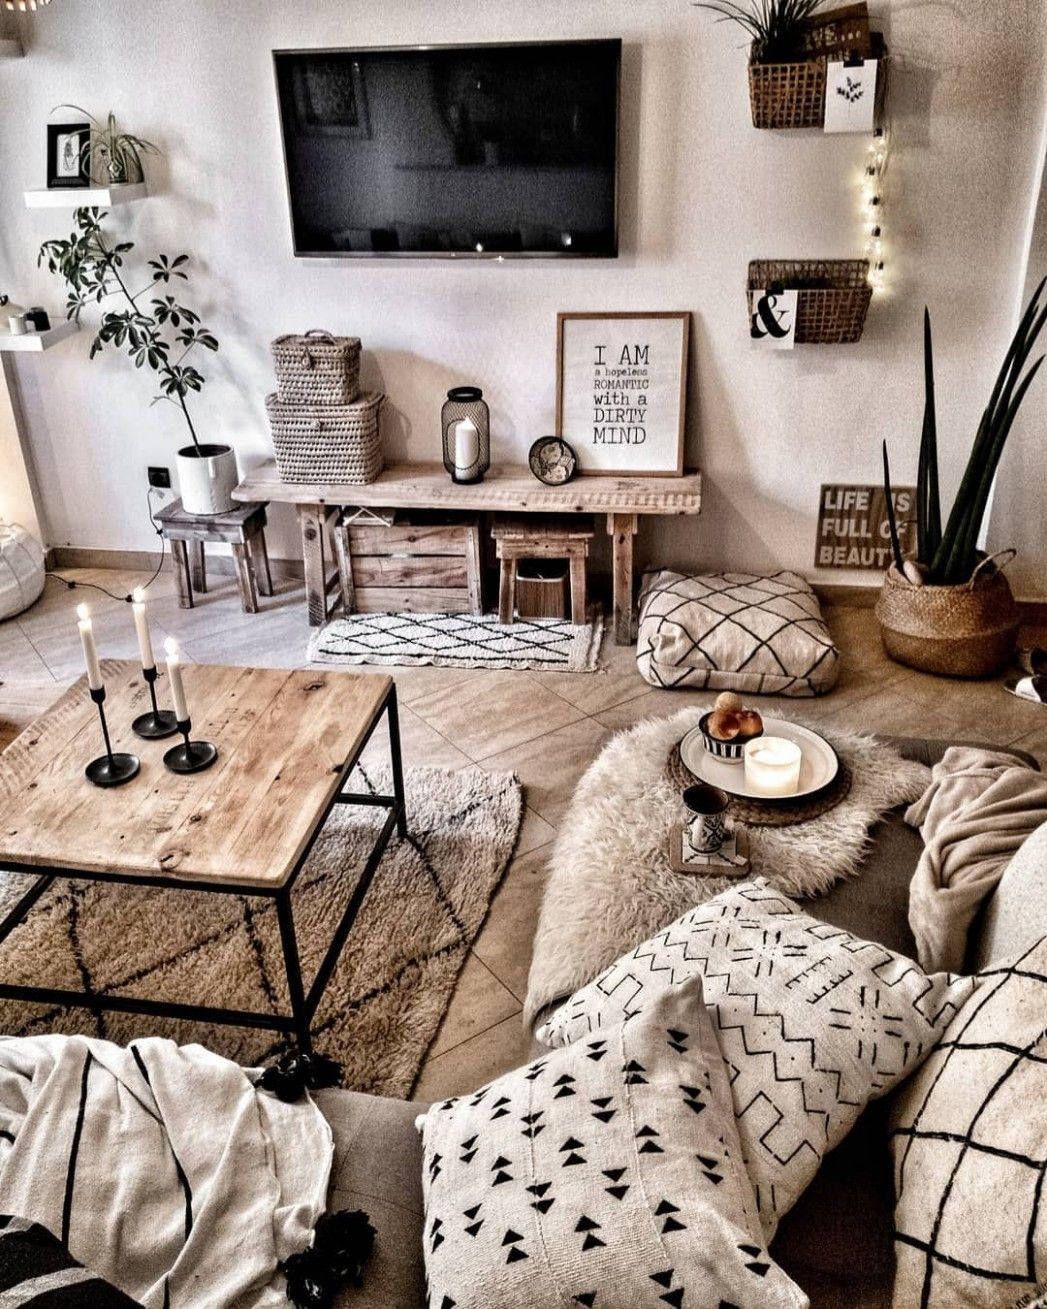 Simple Living Room Interior Design: Rustic Boho Living Room In 2020 (With Images)